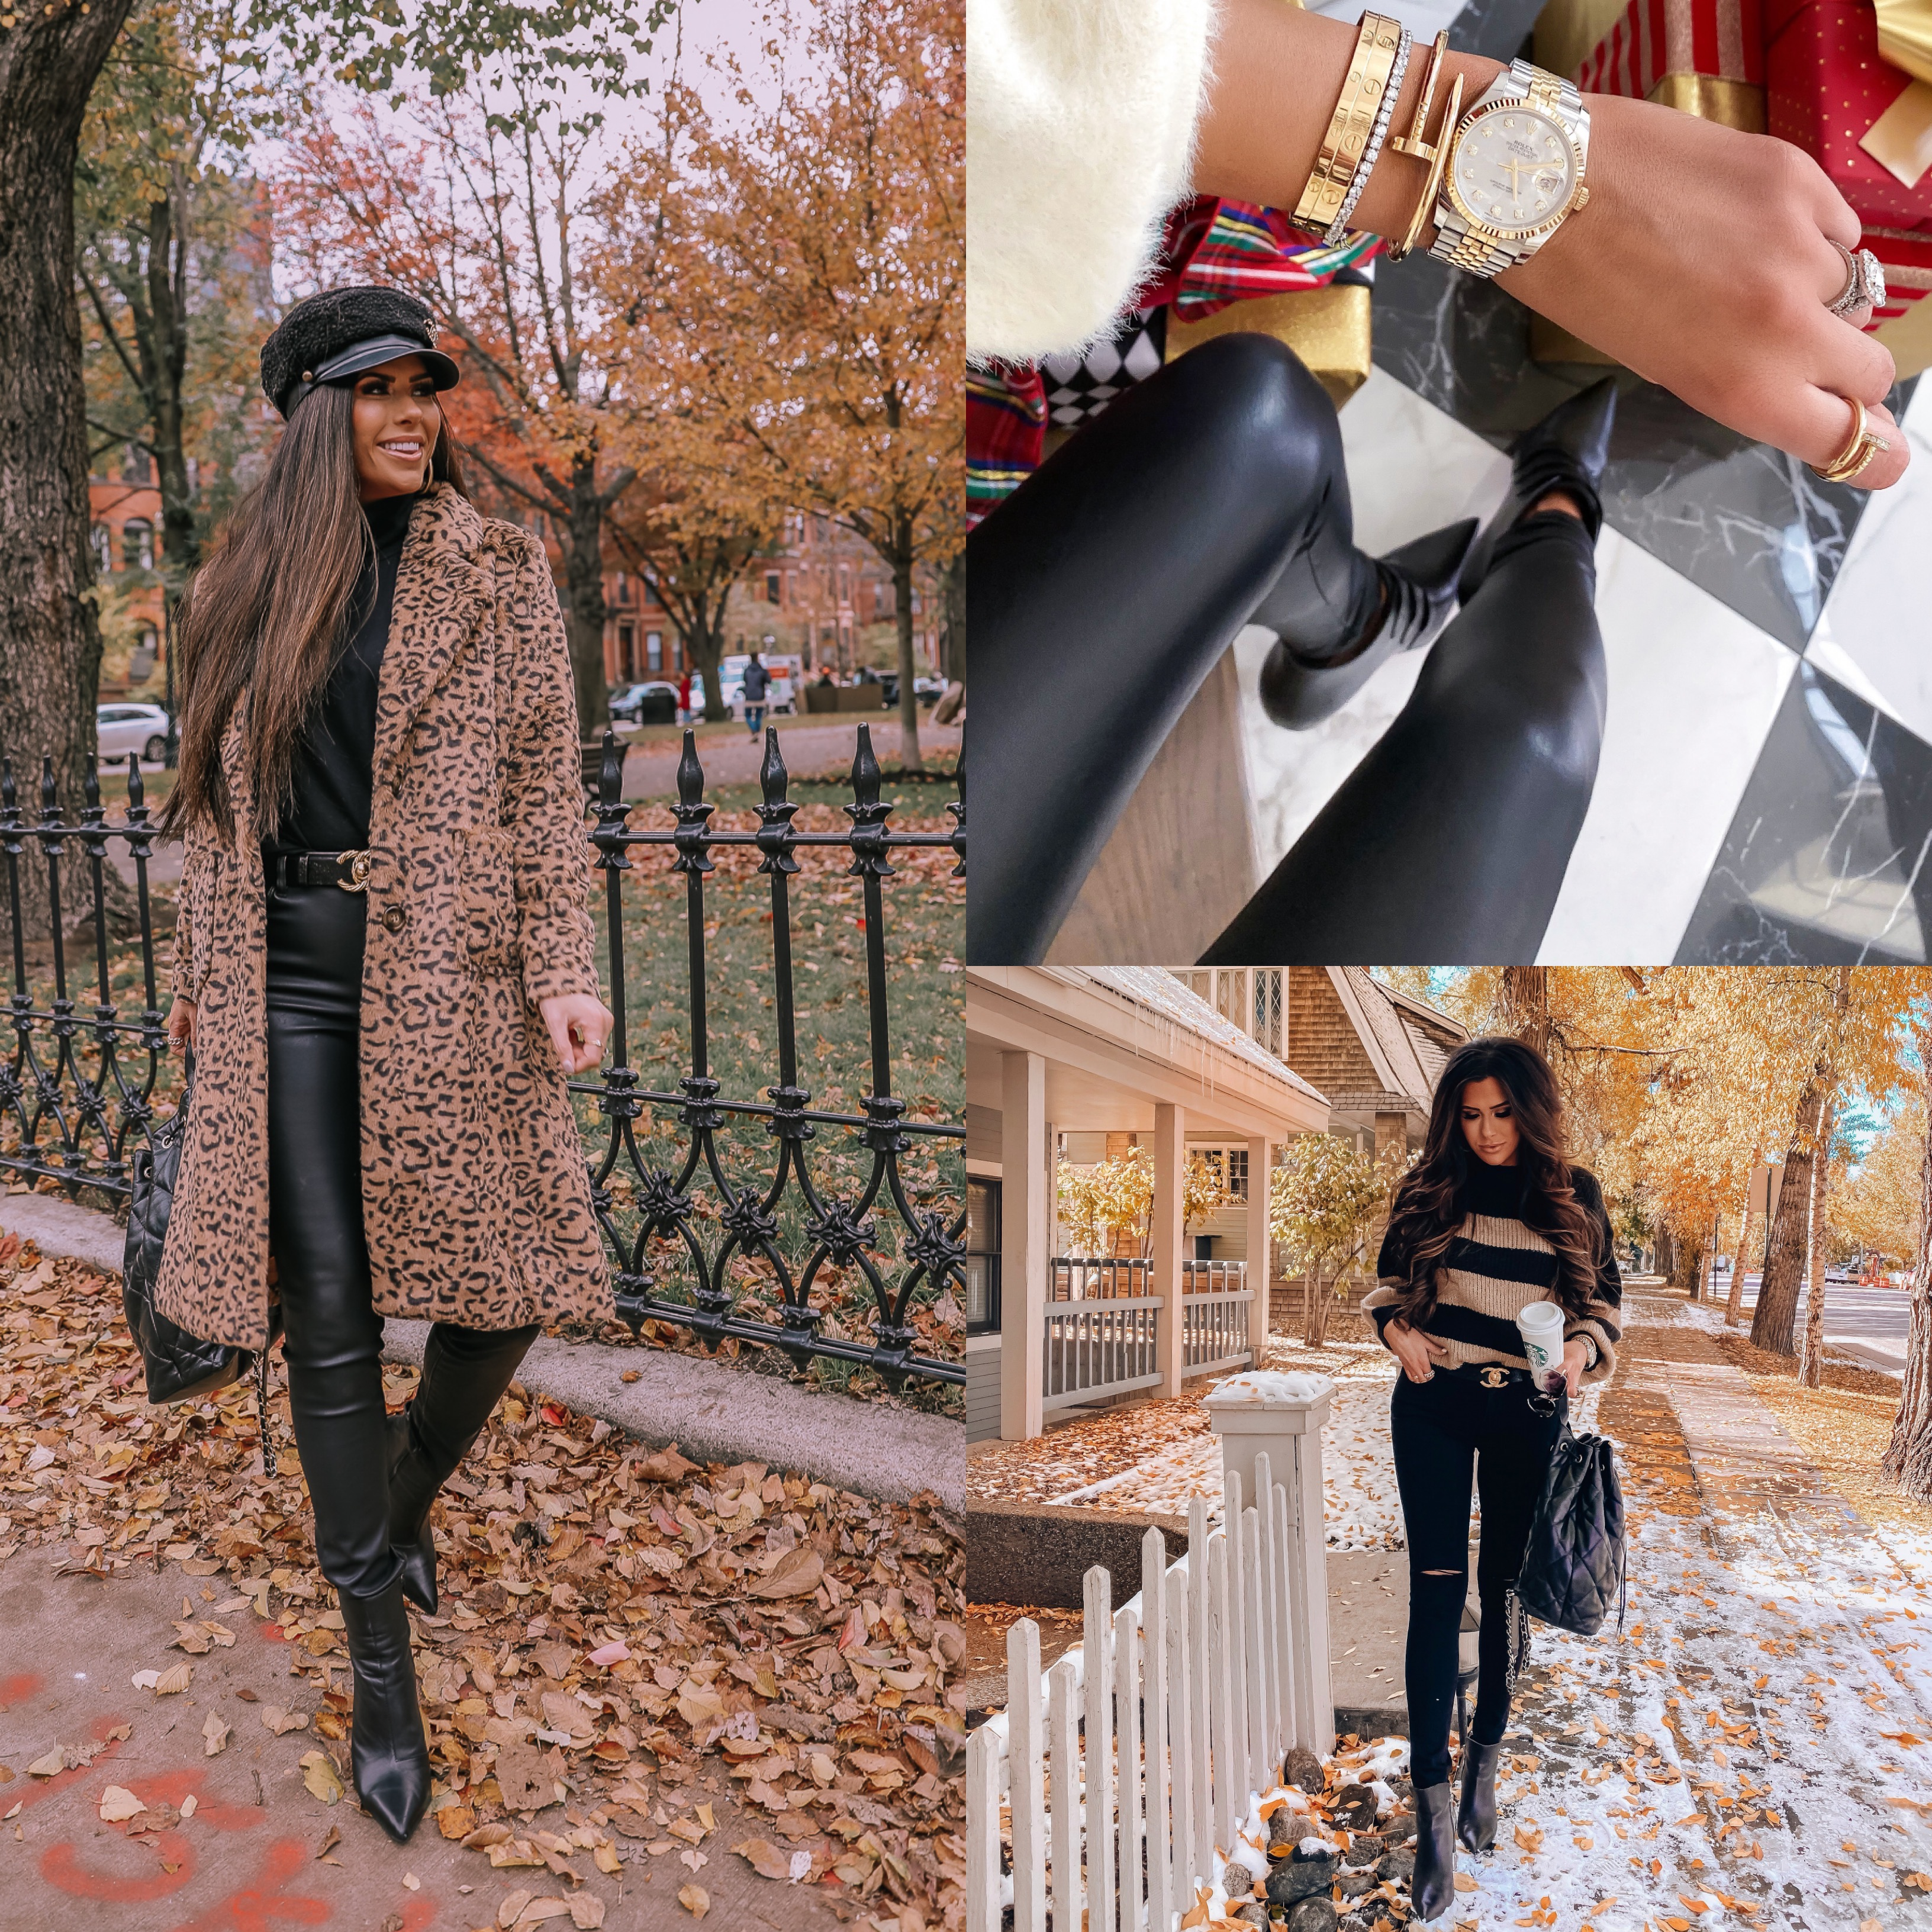 best of black faux leather pants 2019, best faux leather pants | best athletic leggings lululemon, zella, spanx review | Best Wardrobe Essentials 2019👖 | Part 2 by popular US fashion blog, The Sweetest Thing: collage image of a woman wearing Nordstrom Perfect Control Faux Leather Leggings COMMANDO and Nordstrom Faux Leather Button Front Pants BLANKNYC.